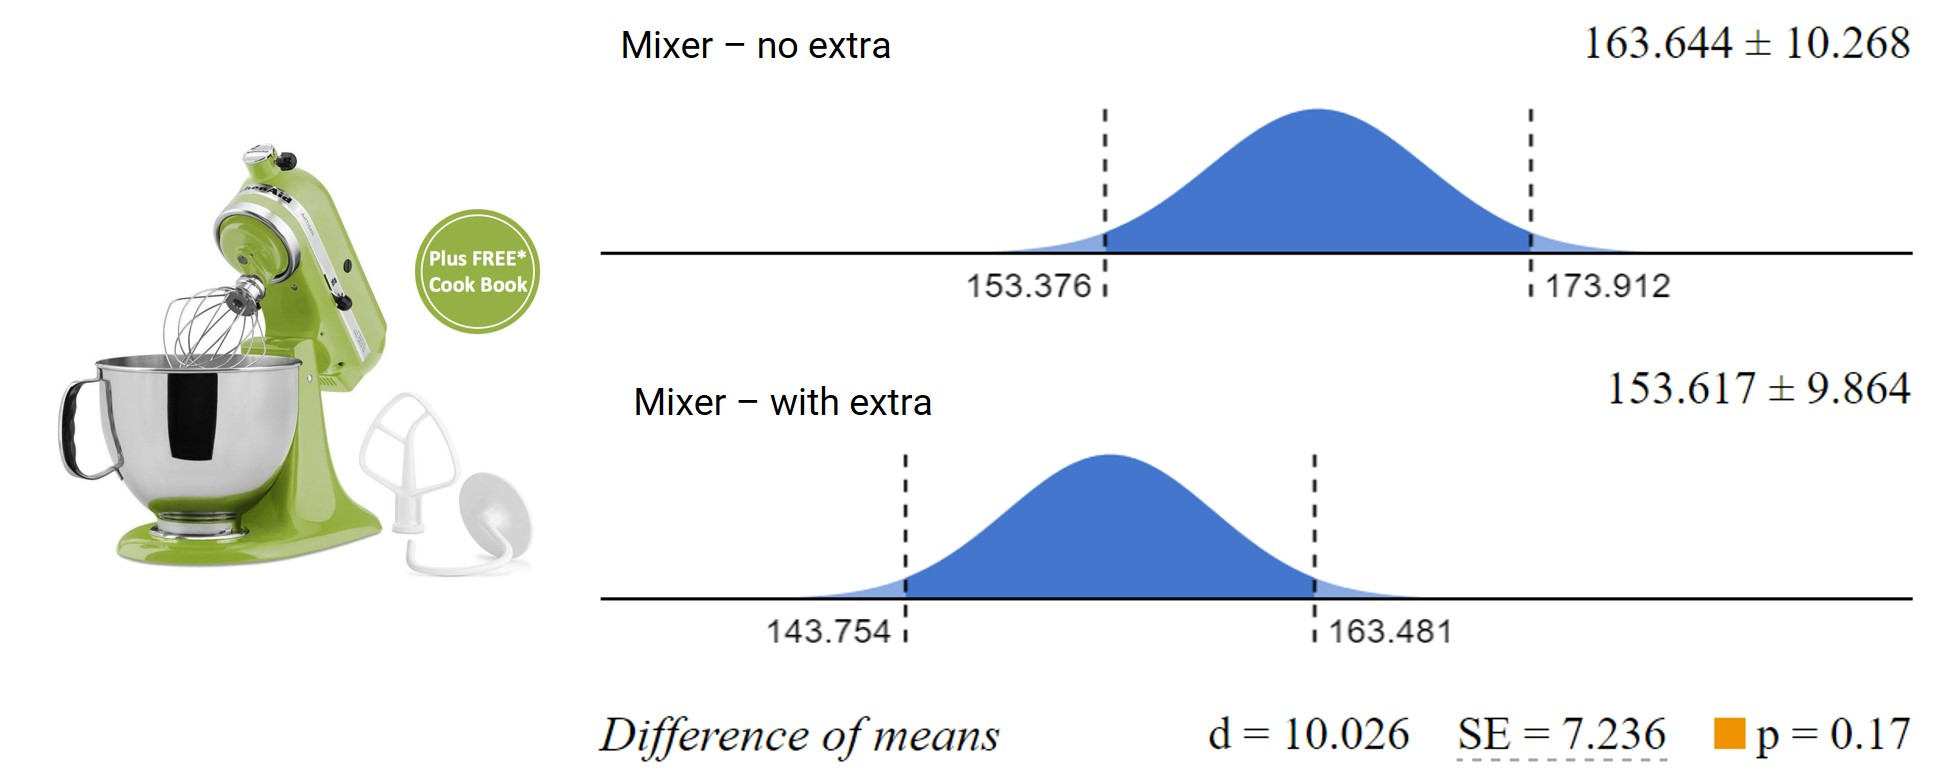 Confidence intervals and estimated difference between value estimations of the mixer when it was offered by itself (top) and with a cheap 'extra' (bottom)